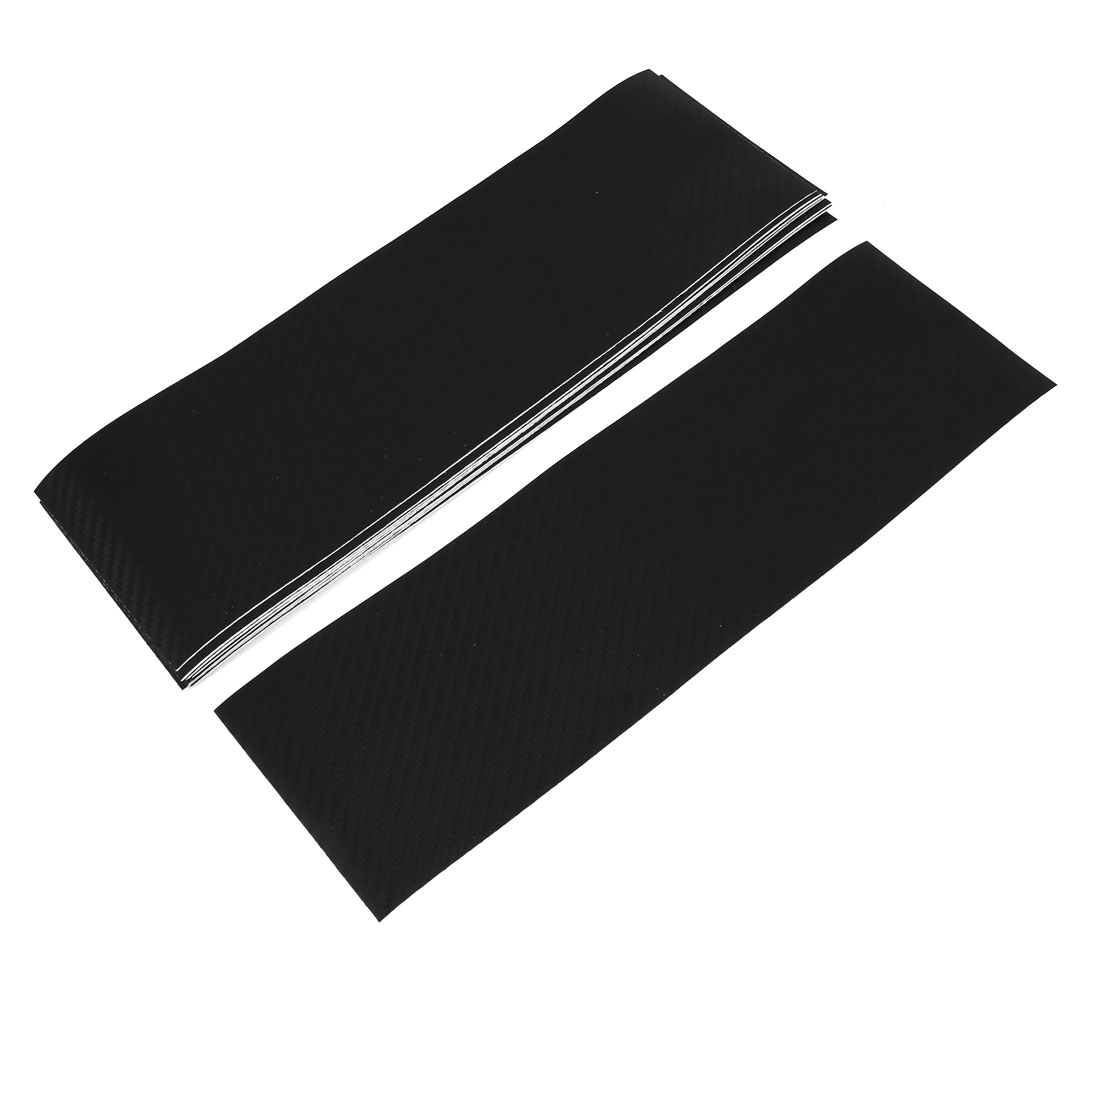 10pcs 300 x 92mm Self Adhesive Carbon Fiber Protective Film Sticker Black for Car